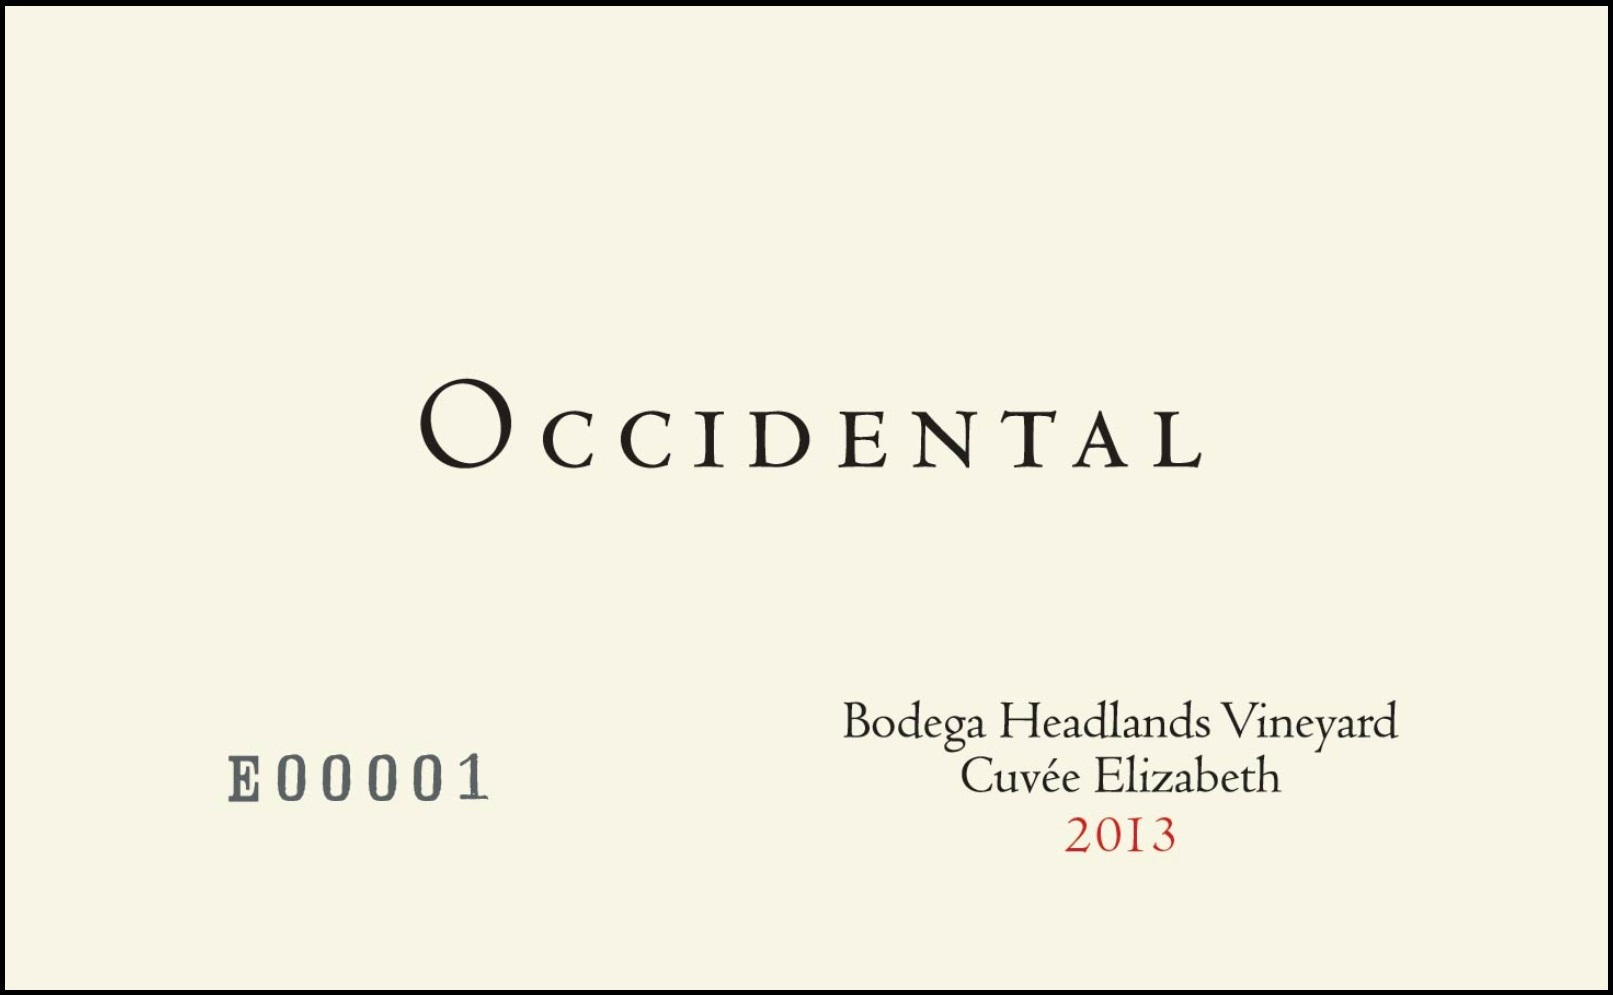 2014 Kistler Occidental Pinot Noir Bodega Headlands Vineyard Cuvee Elizabeth